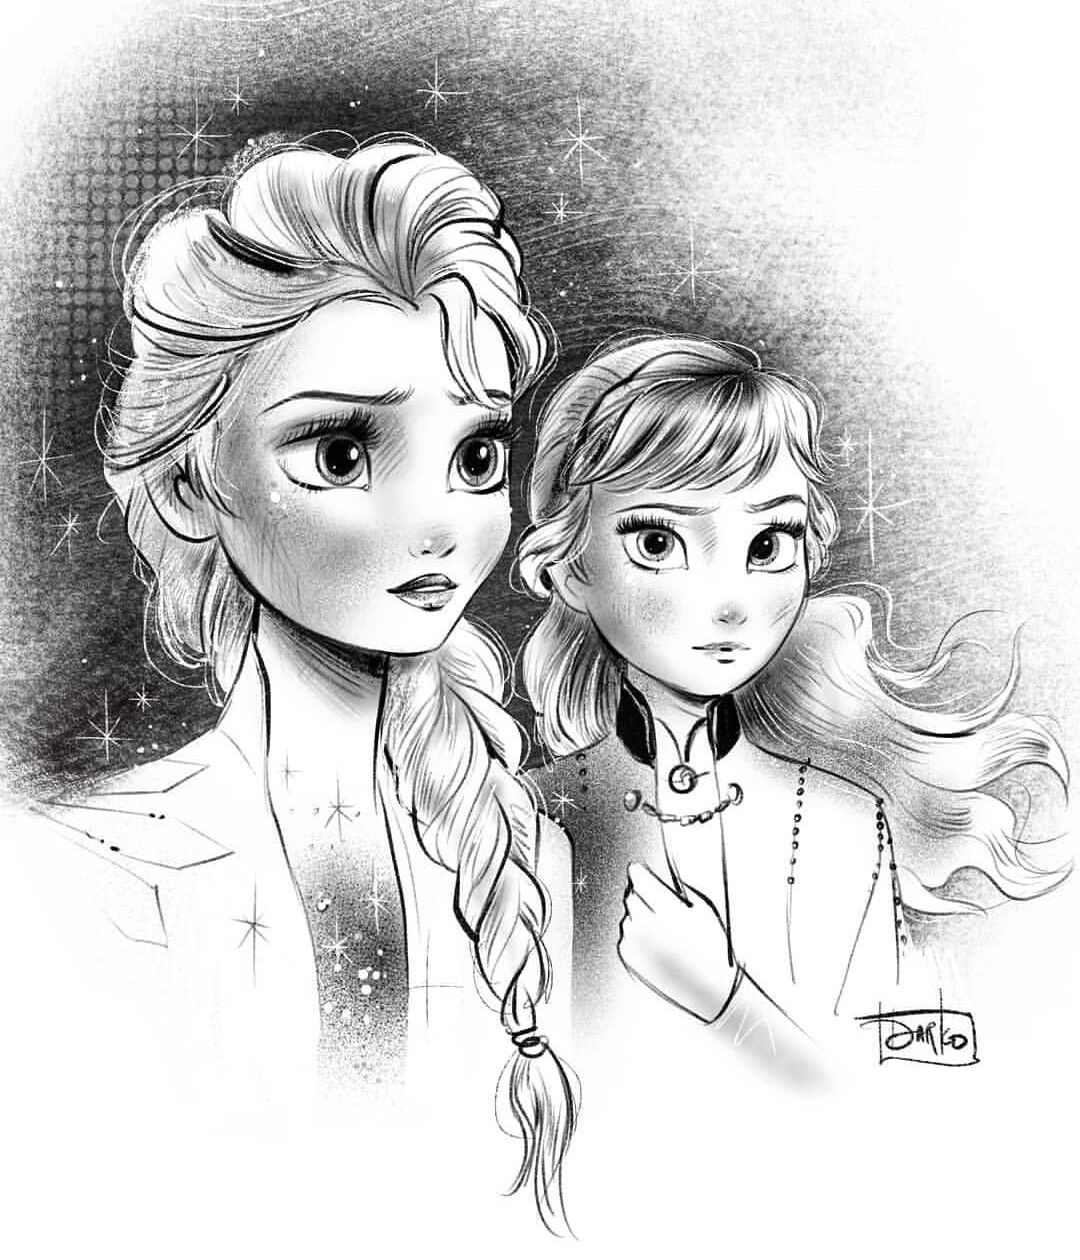 Drawing Frozen Elsa Snow Queen Drawholic Frozen Drawings How To Draw Elsa Drawings